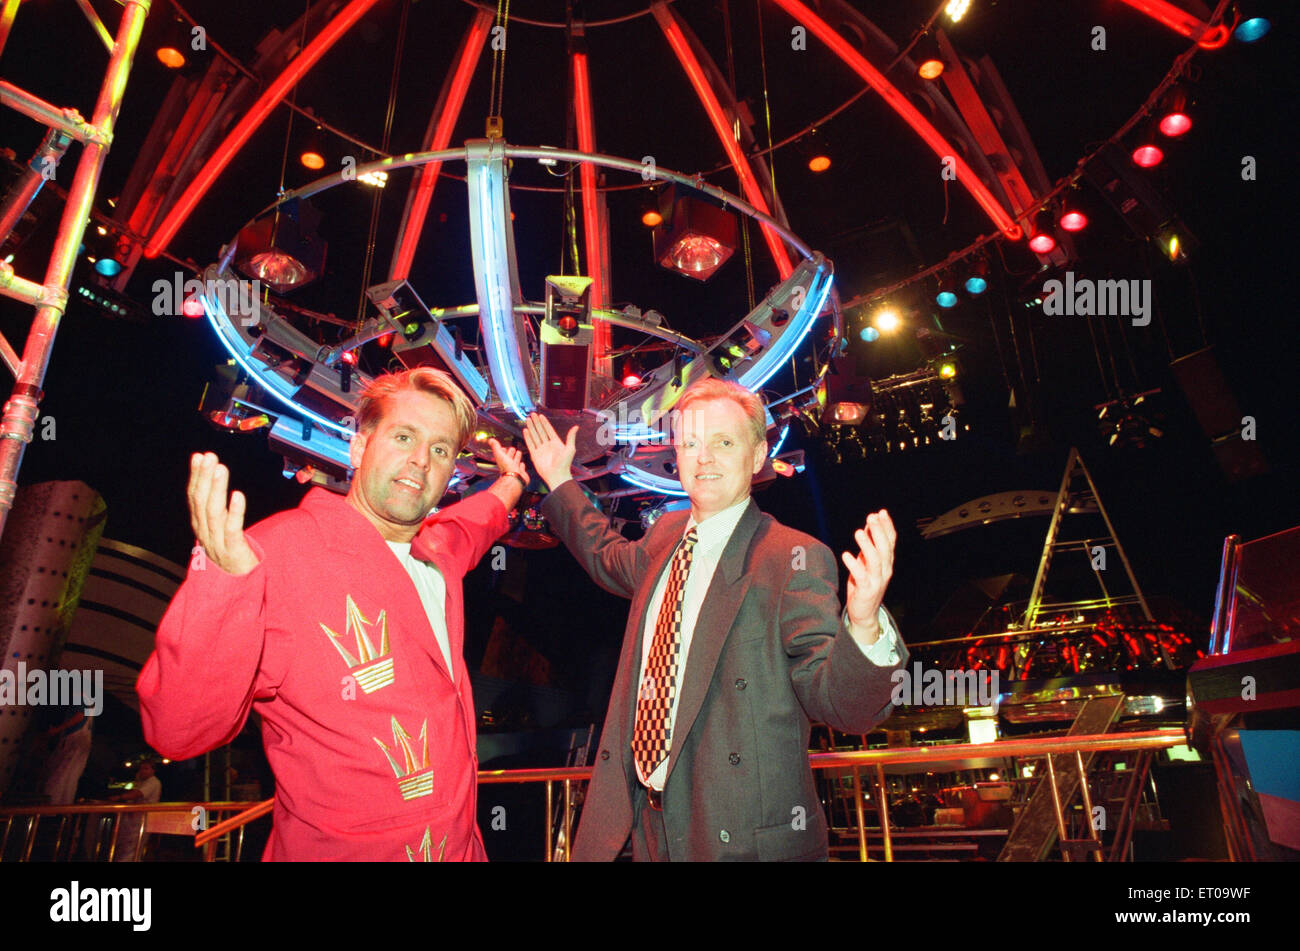 John Anderson, manager of The Visage, Stockton's new nightclub, pictured with Jason Reeve, Entertainment and - Stock Image